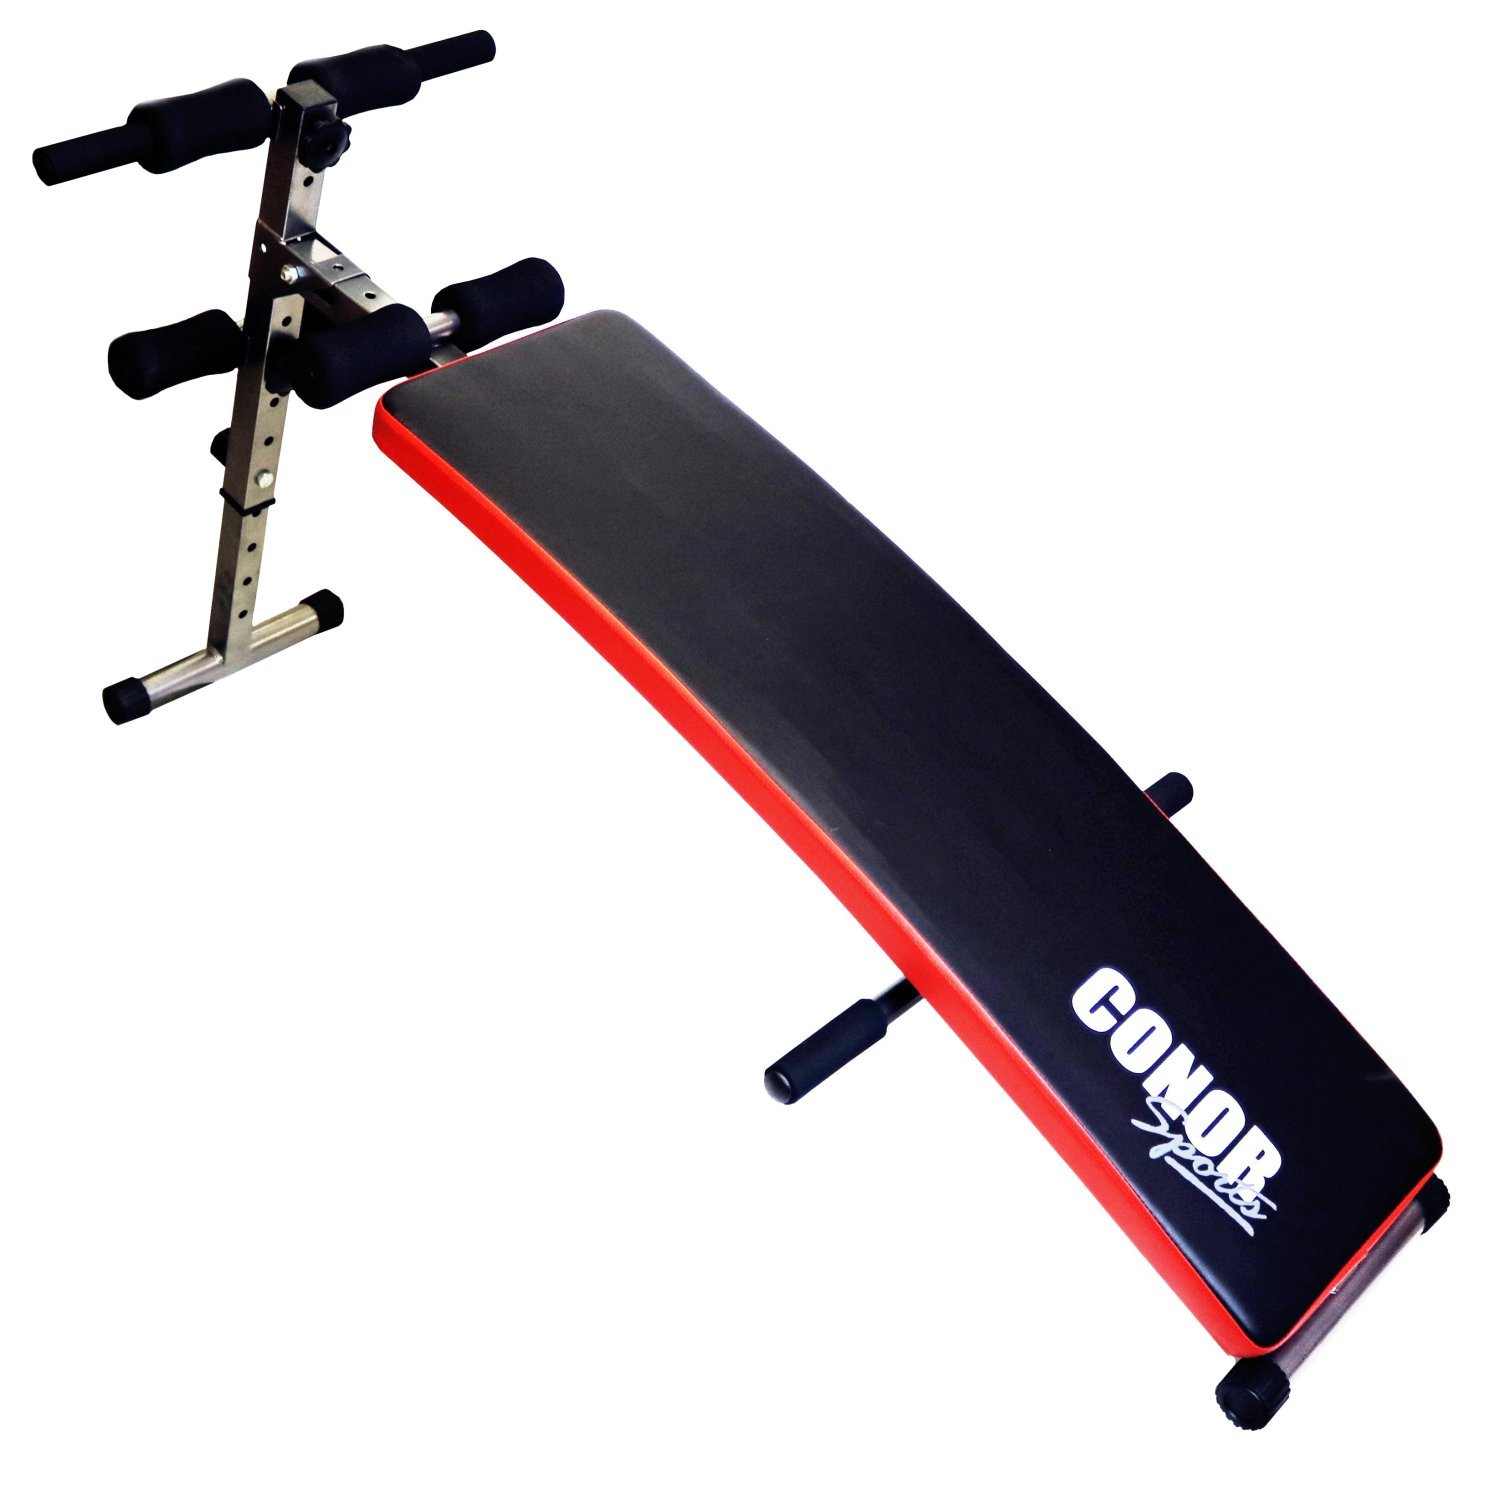 Abs Bench Workout Part - 42: Oypla Conor Sports Folding Sit Up AB Bench: Amazon.co.uk: Sports U0026 Outdoors